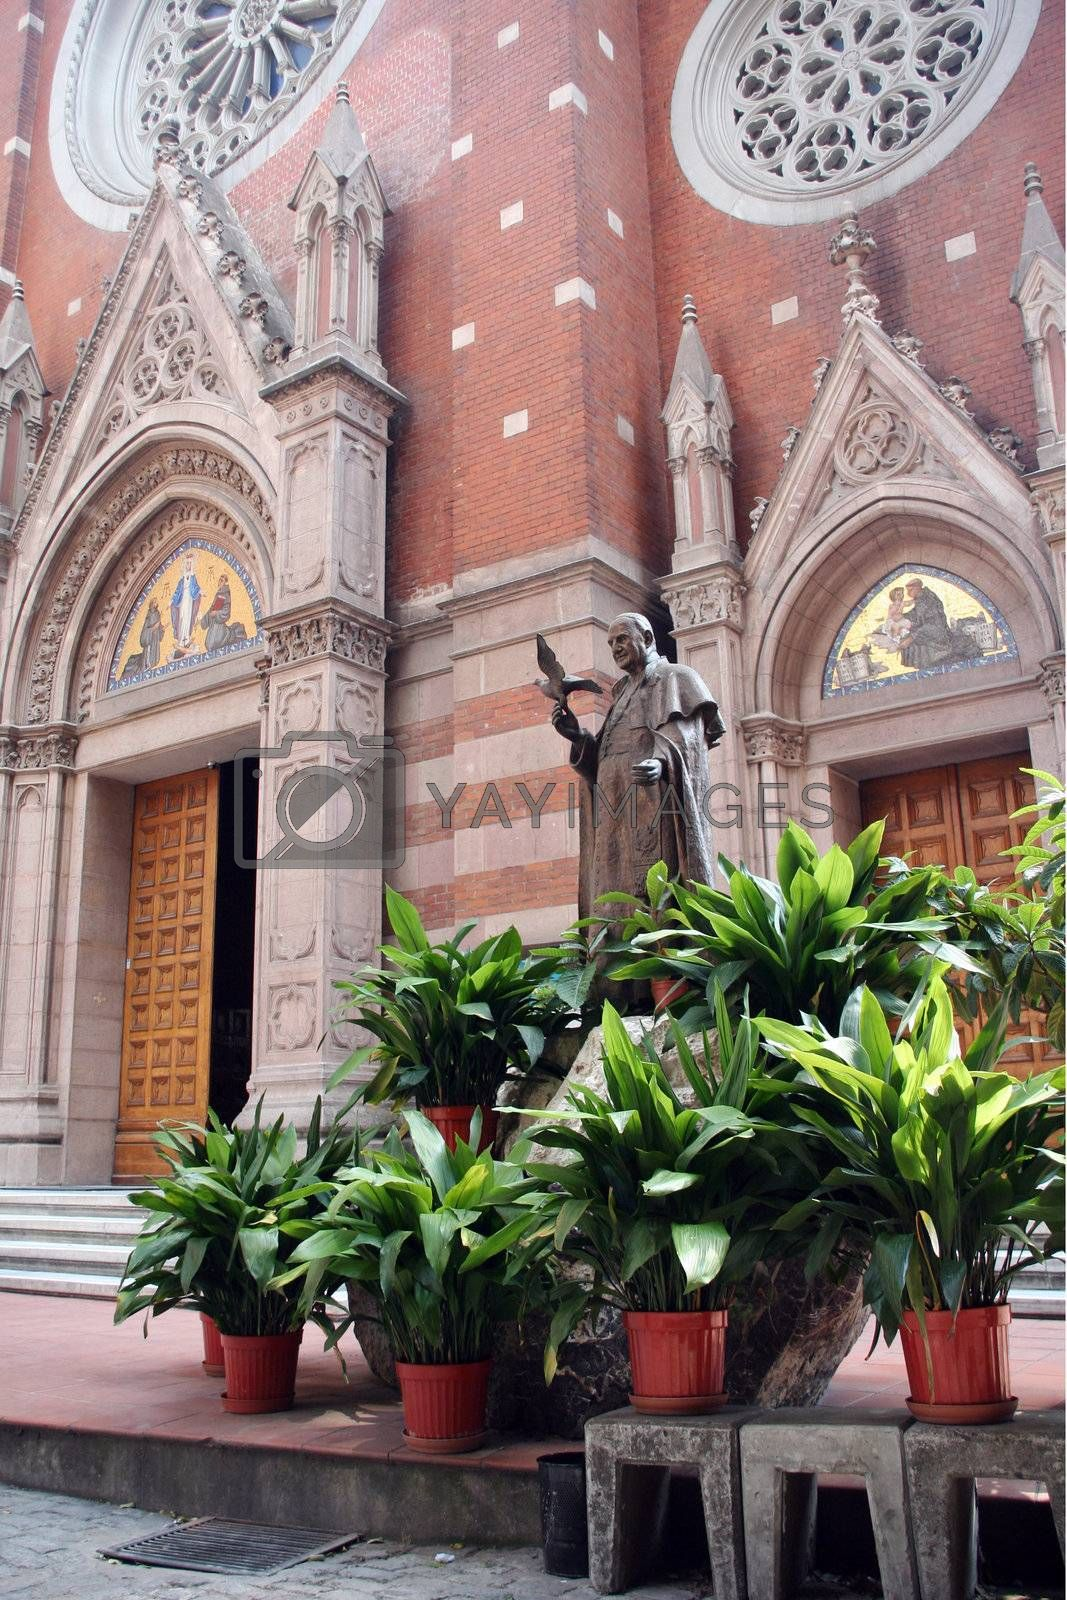 cathedral church architecture religion catholicism monument christ